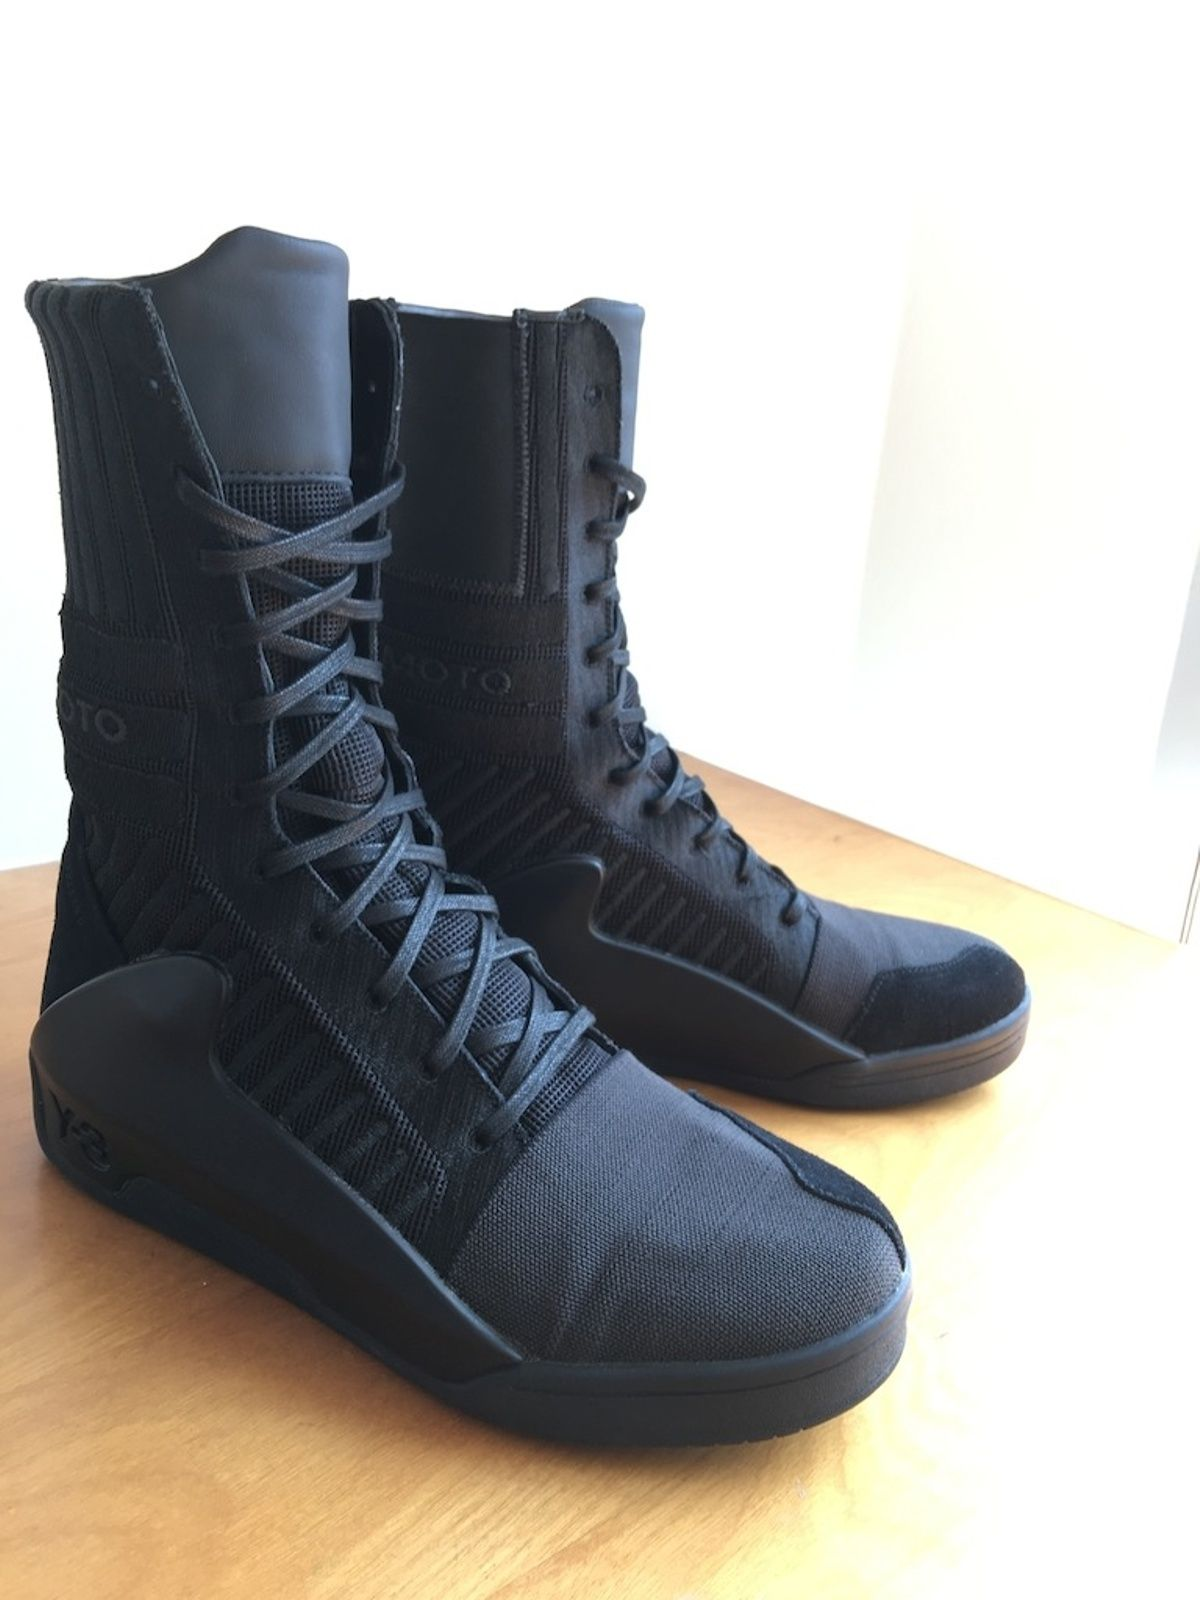 76209359e3c64 Buy Y-3 Yohji Yamamoto Y 3 Hayworth Guard High Boots